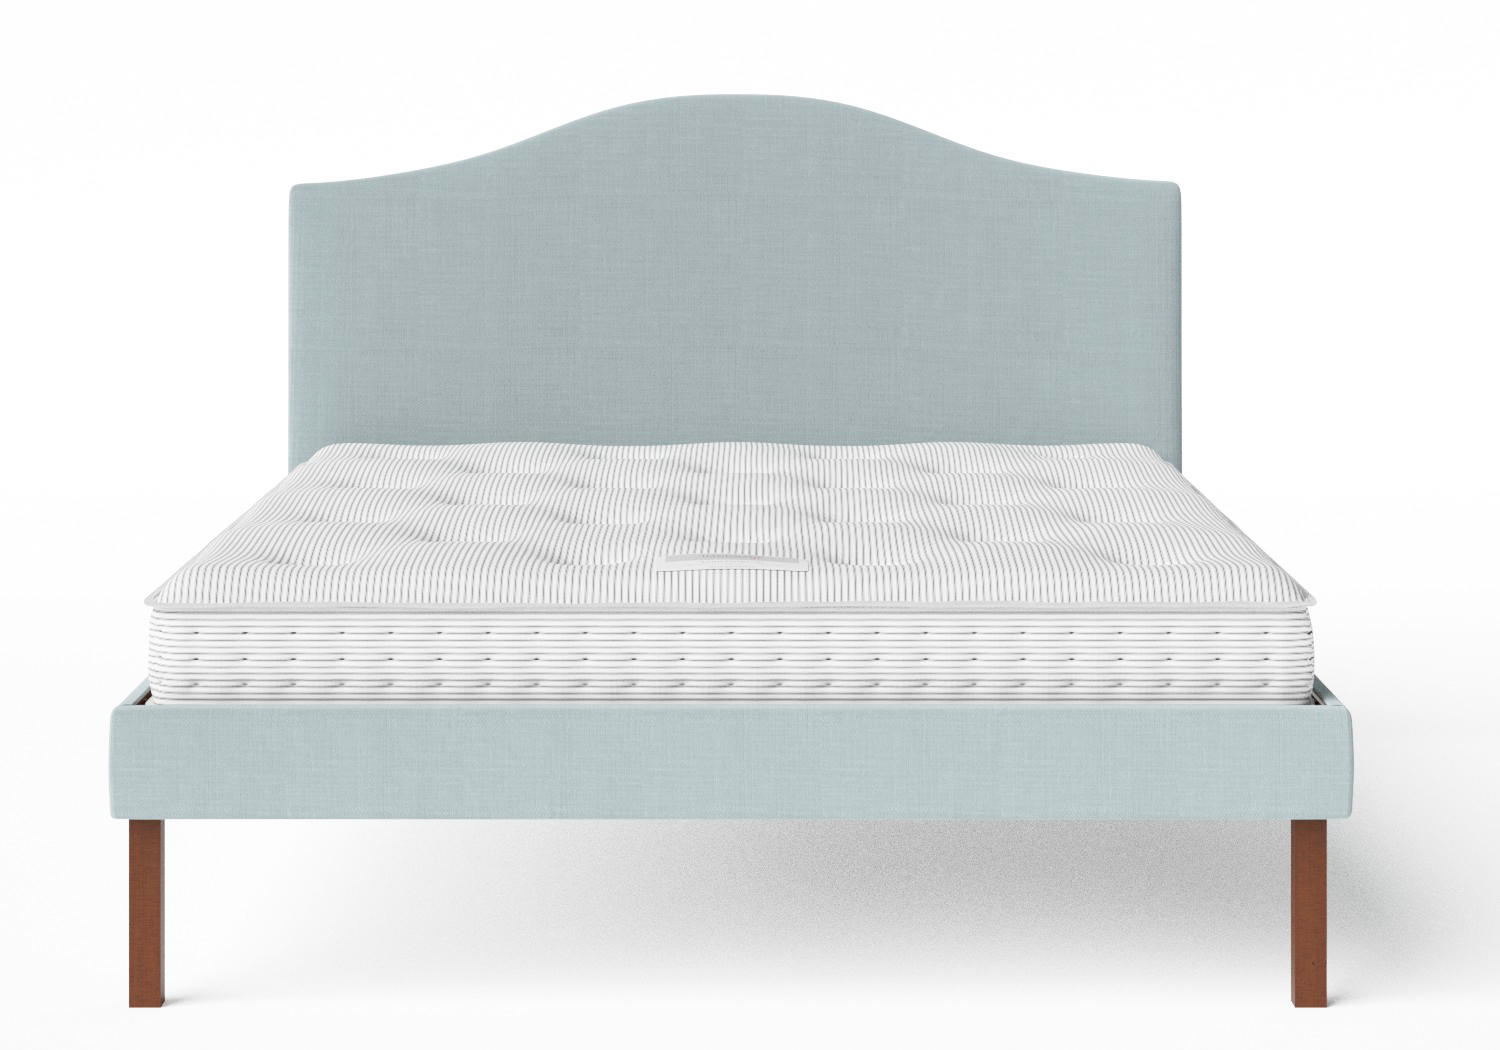 Yoshida Upholstered Bed in Wedgewood fabric shown with Juno 1 mattress